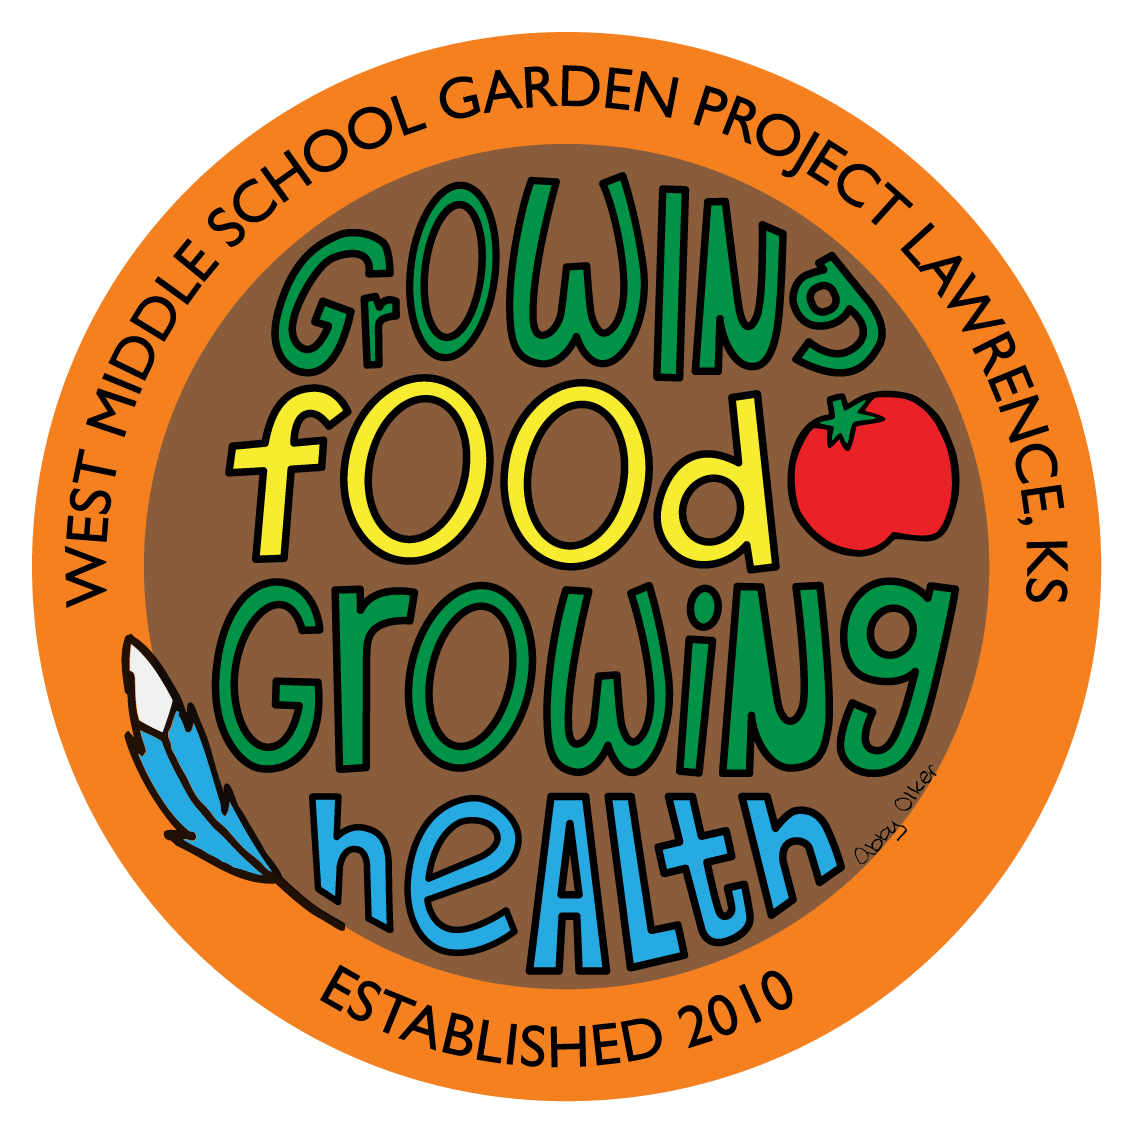 Growing Food Growing Health